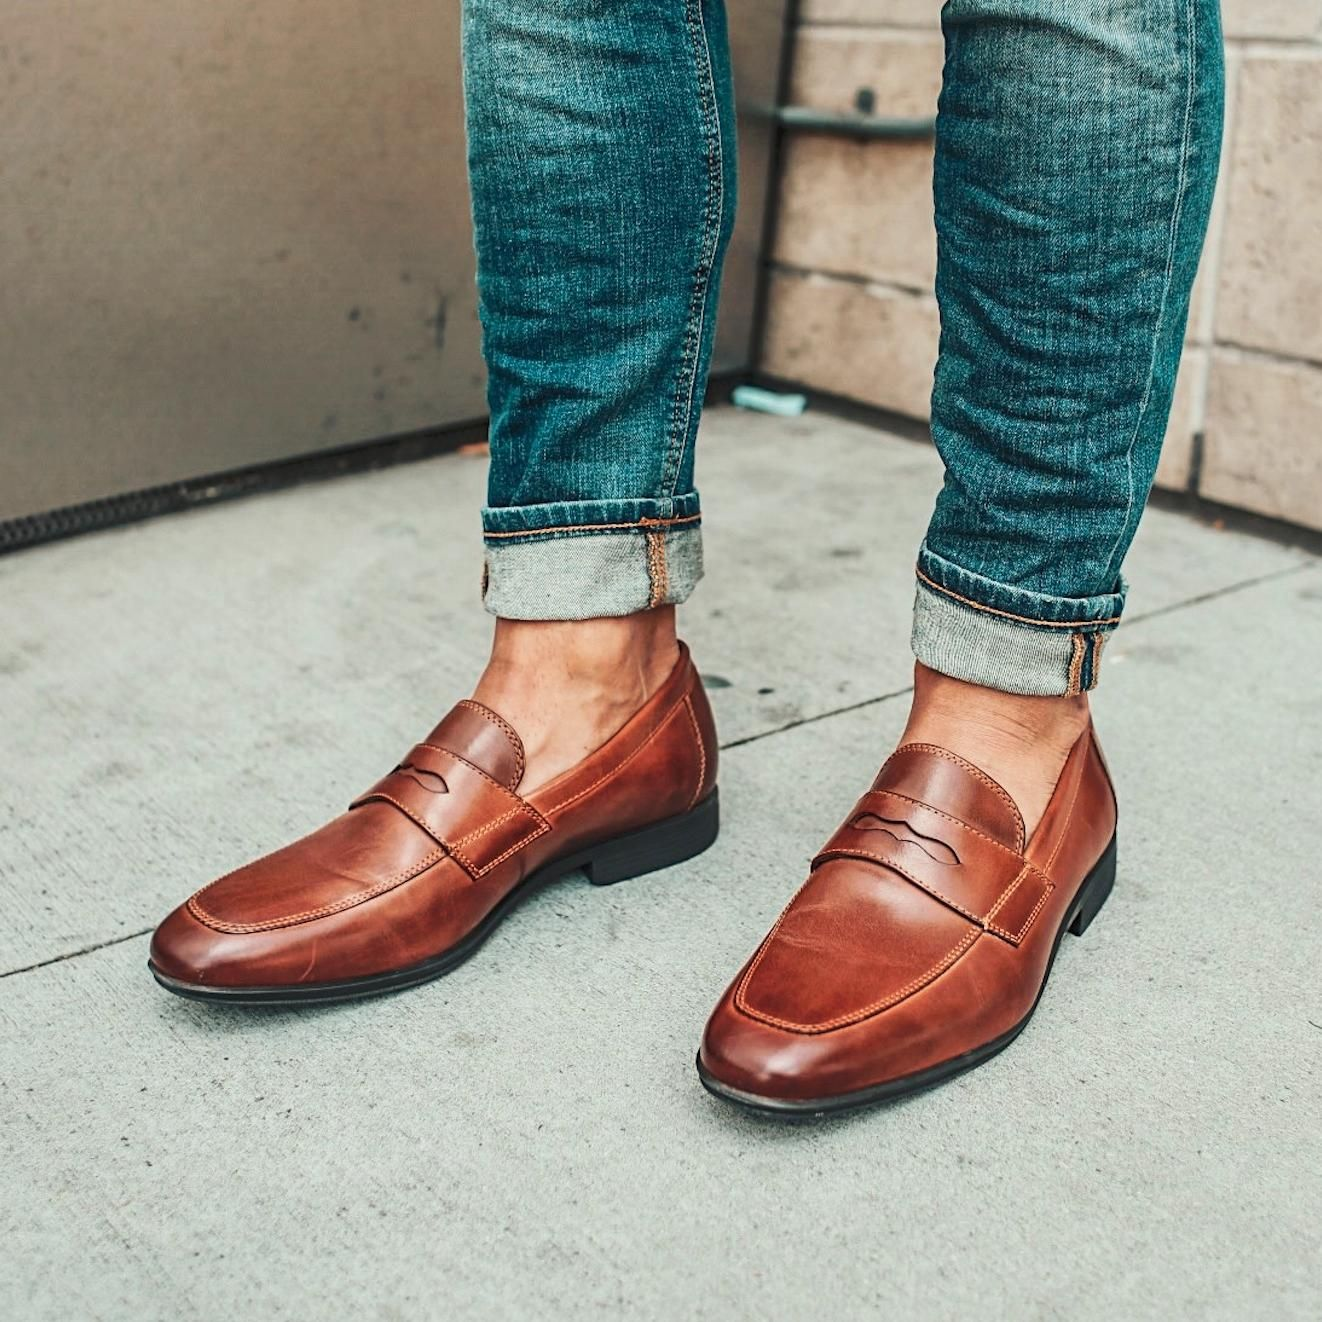 ebe9c4773a5 Penny loafers + denim   a modern take on the classics.  Trend Styled ...